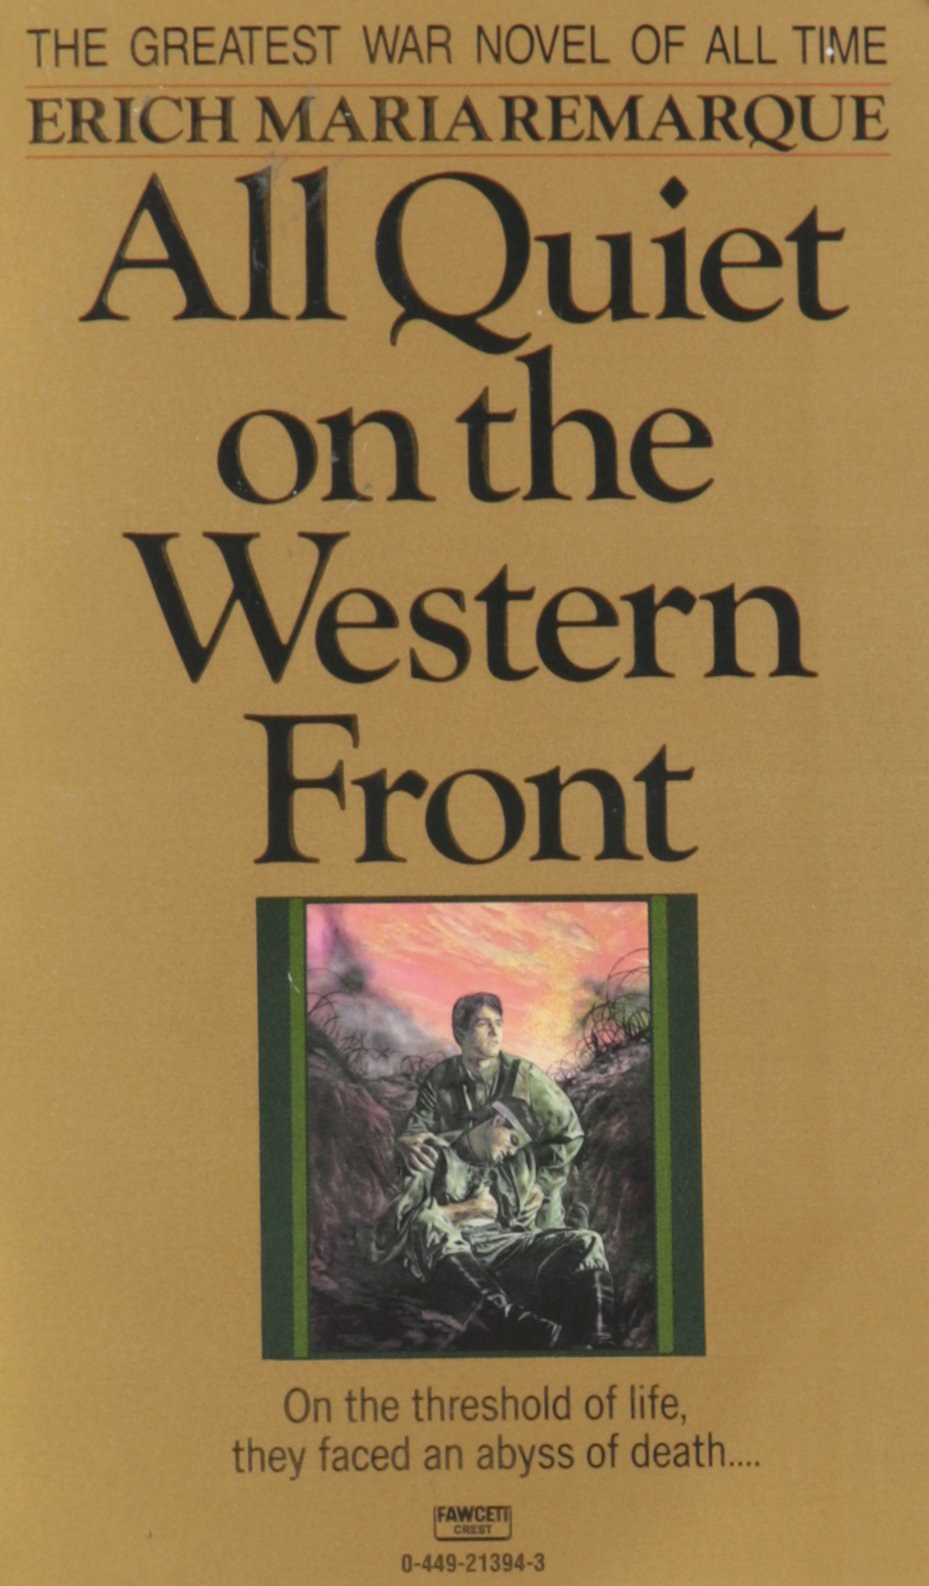 an analysis of the events of world war one in the novel all quiet on the western front by erich mari All quiet on the western front by erich maria remarque (book analysis): detailed summary, analysis and in the extraordinary world war two world war one.